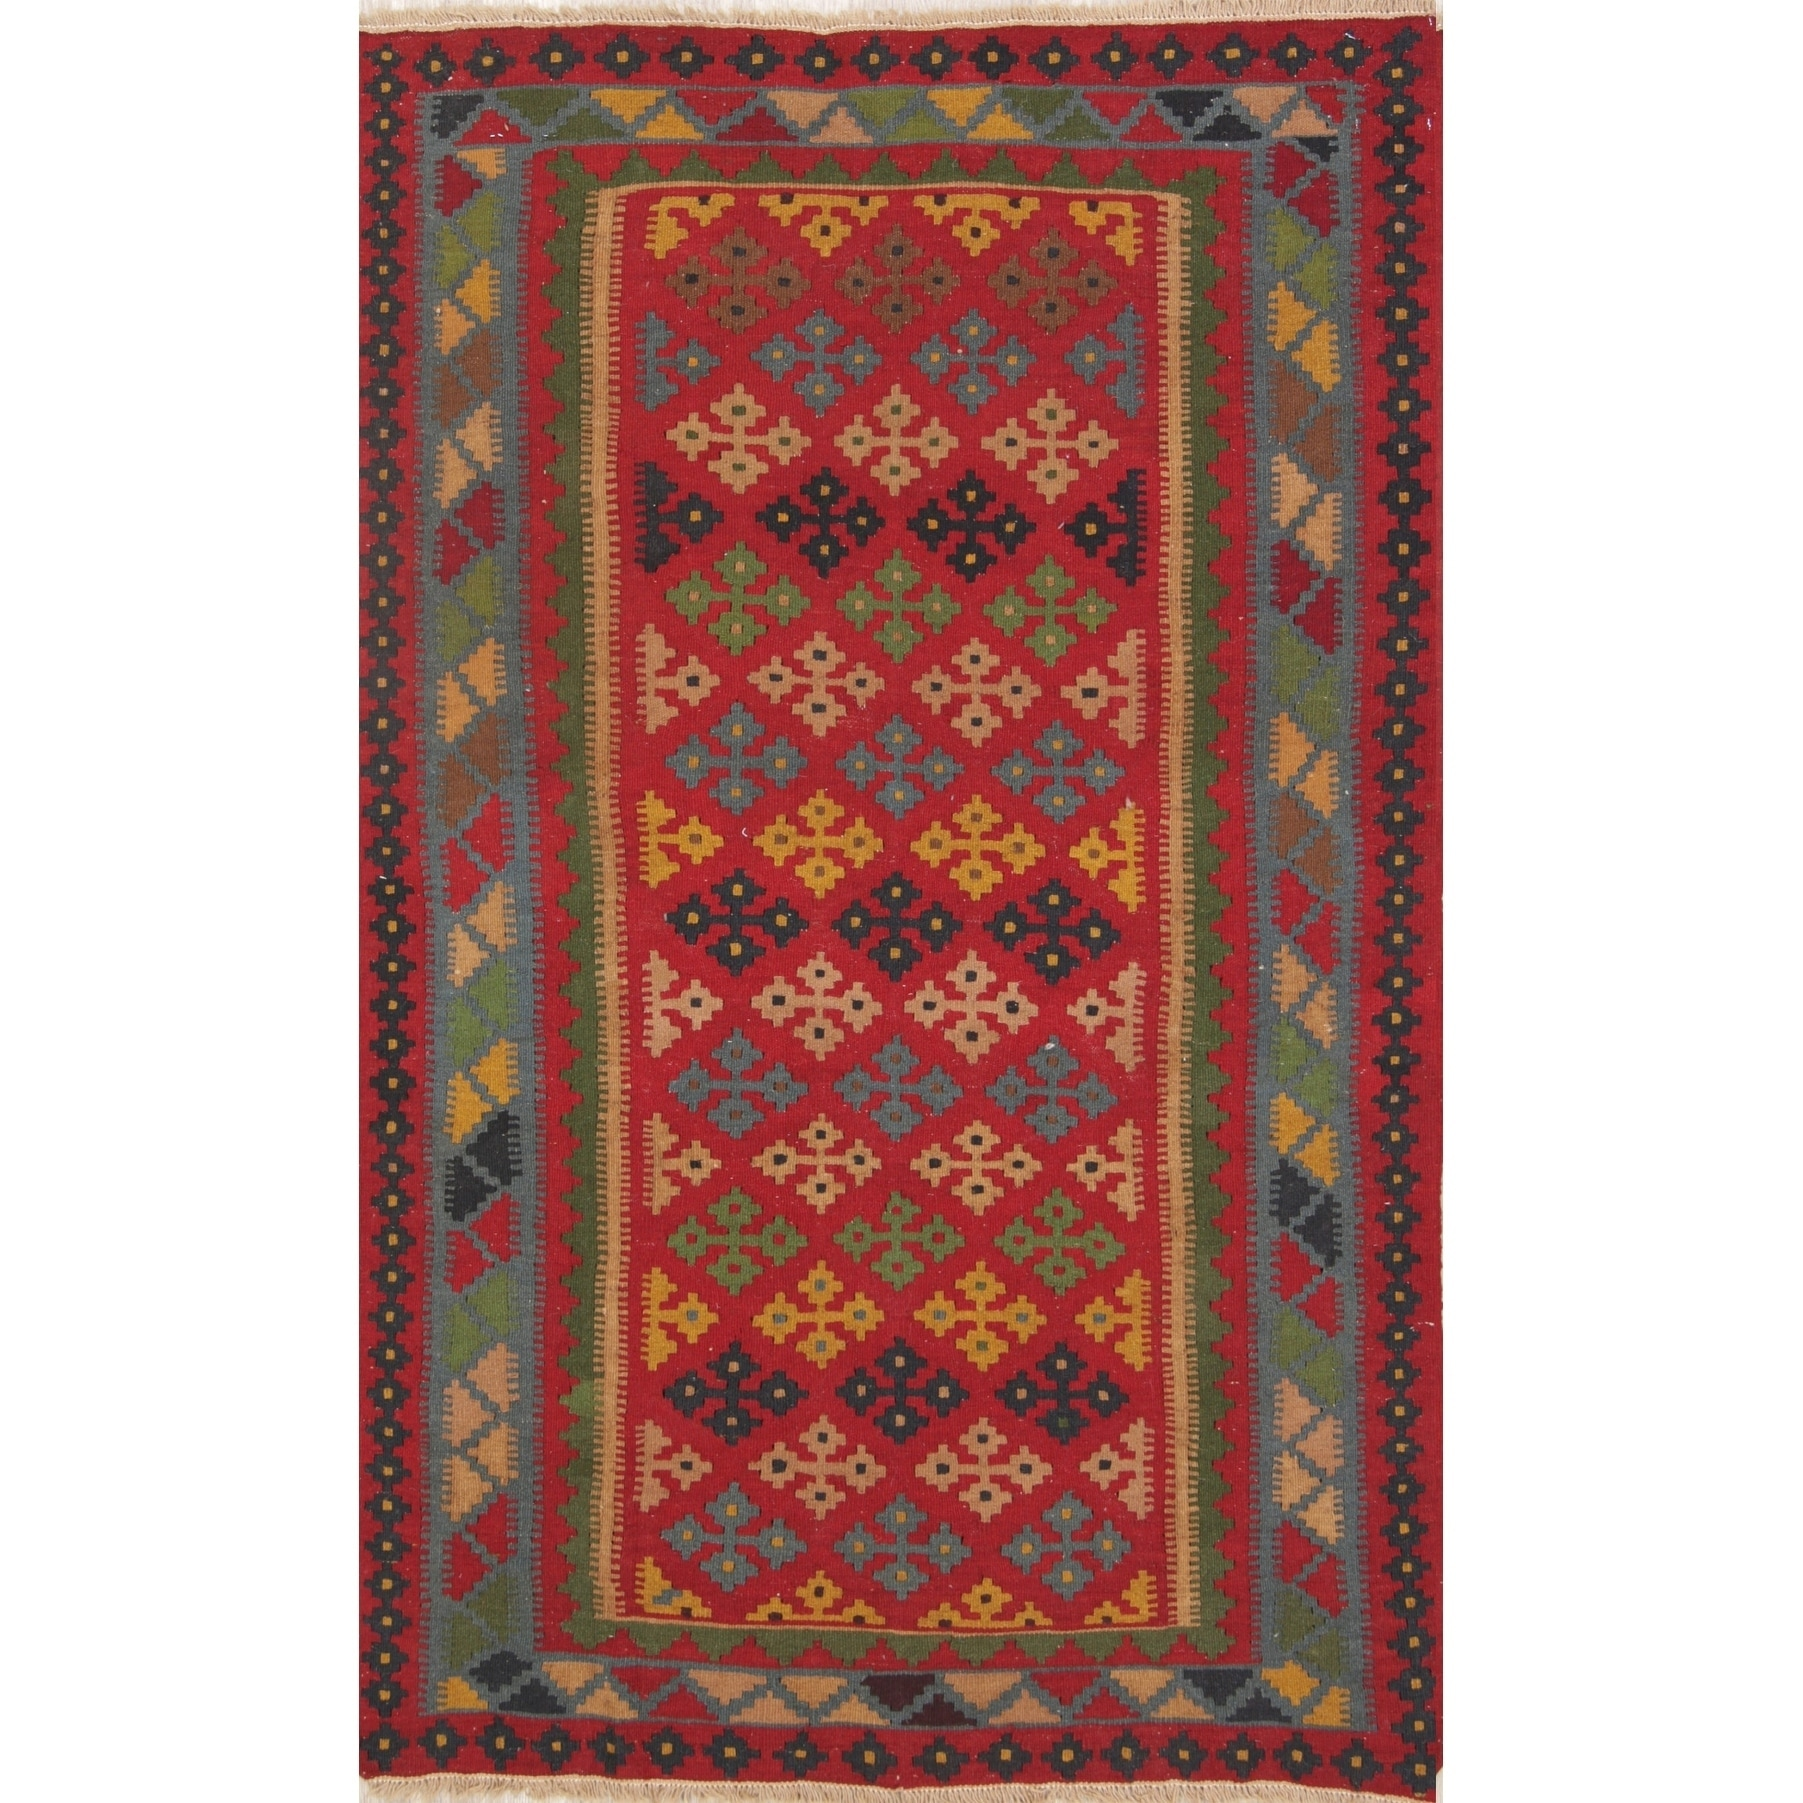 Kilim Geometric Hand Woven Wool Persian Area Rug 6 0 X 3 8 On Sale Overstock 27123006